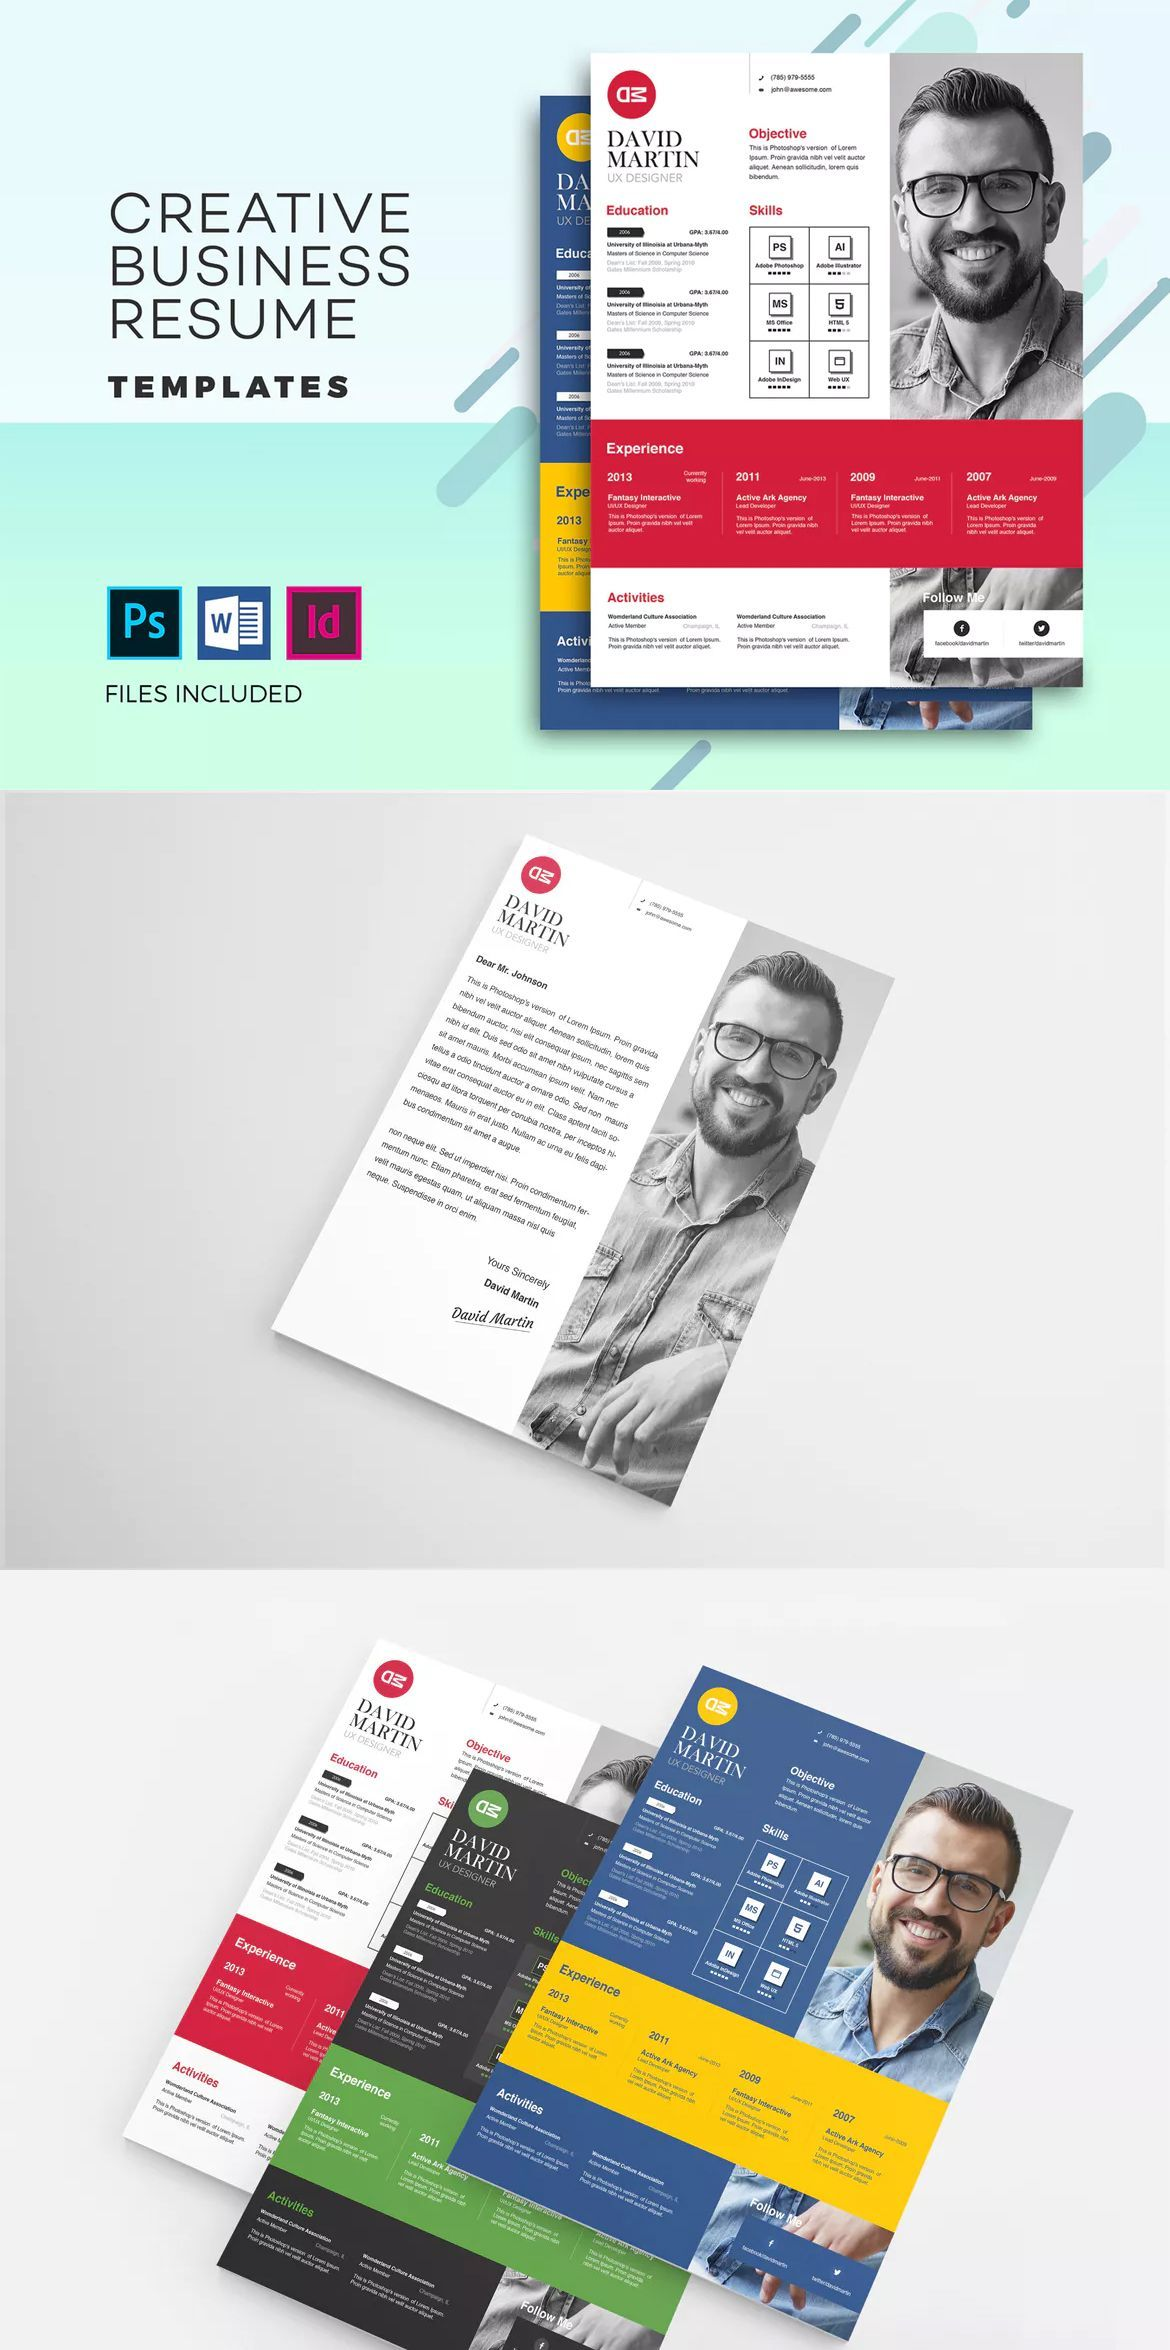 Business Resume & Cover Letter Template PSD, INDD & DOCX